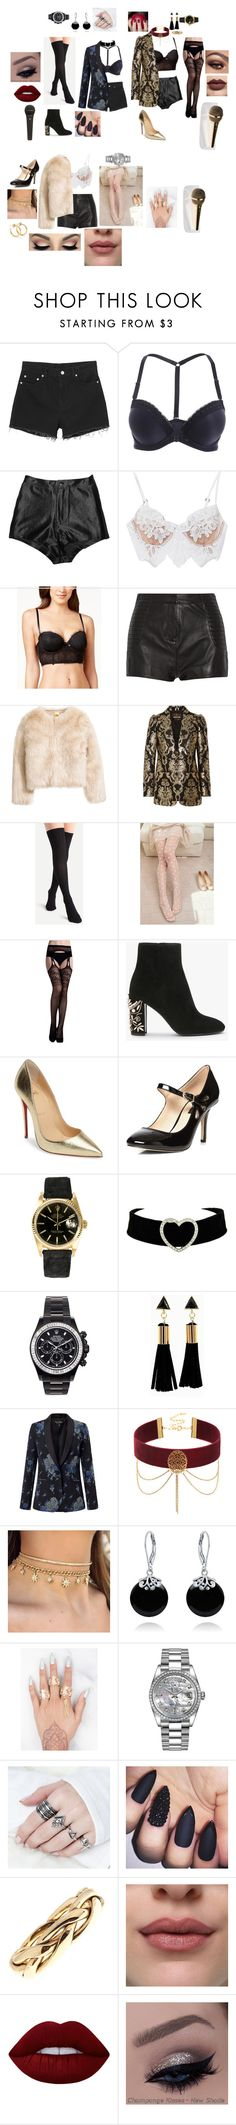 """Bst stl"" by stephrodrigues-1 on Polyvore featuring Monki, For Love & Lemons, Maidenform, Pierre Balmain, Roberto Cavalli, Christian Louboutin, Dorothy Perkins, Rolex, Mad Collections e Miss Selfridge"